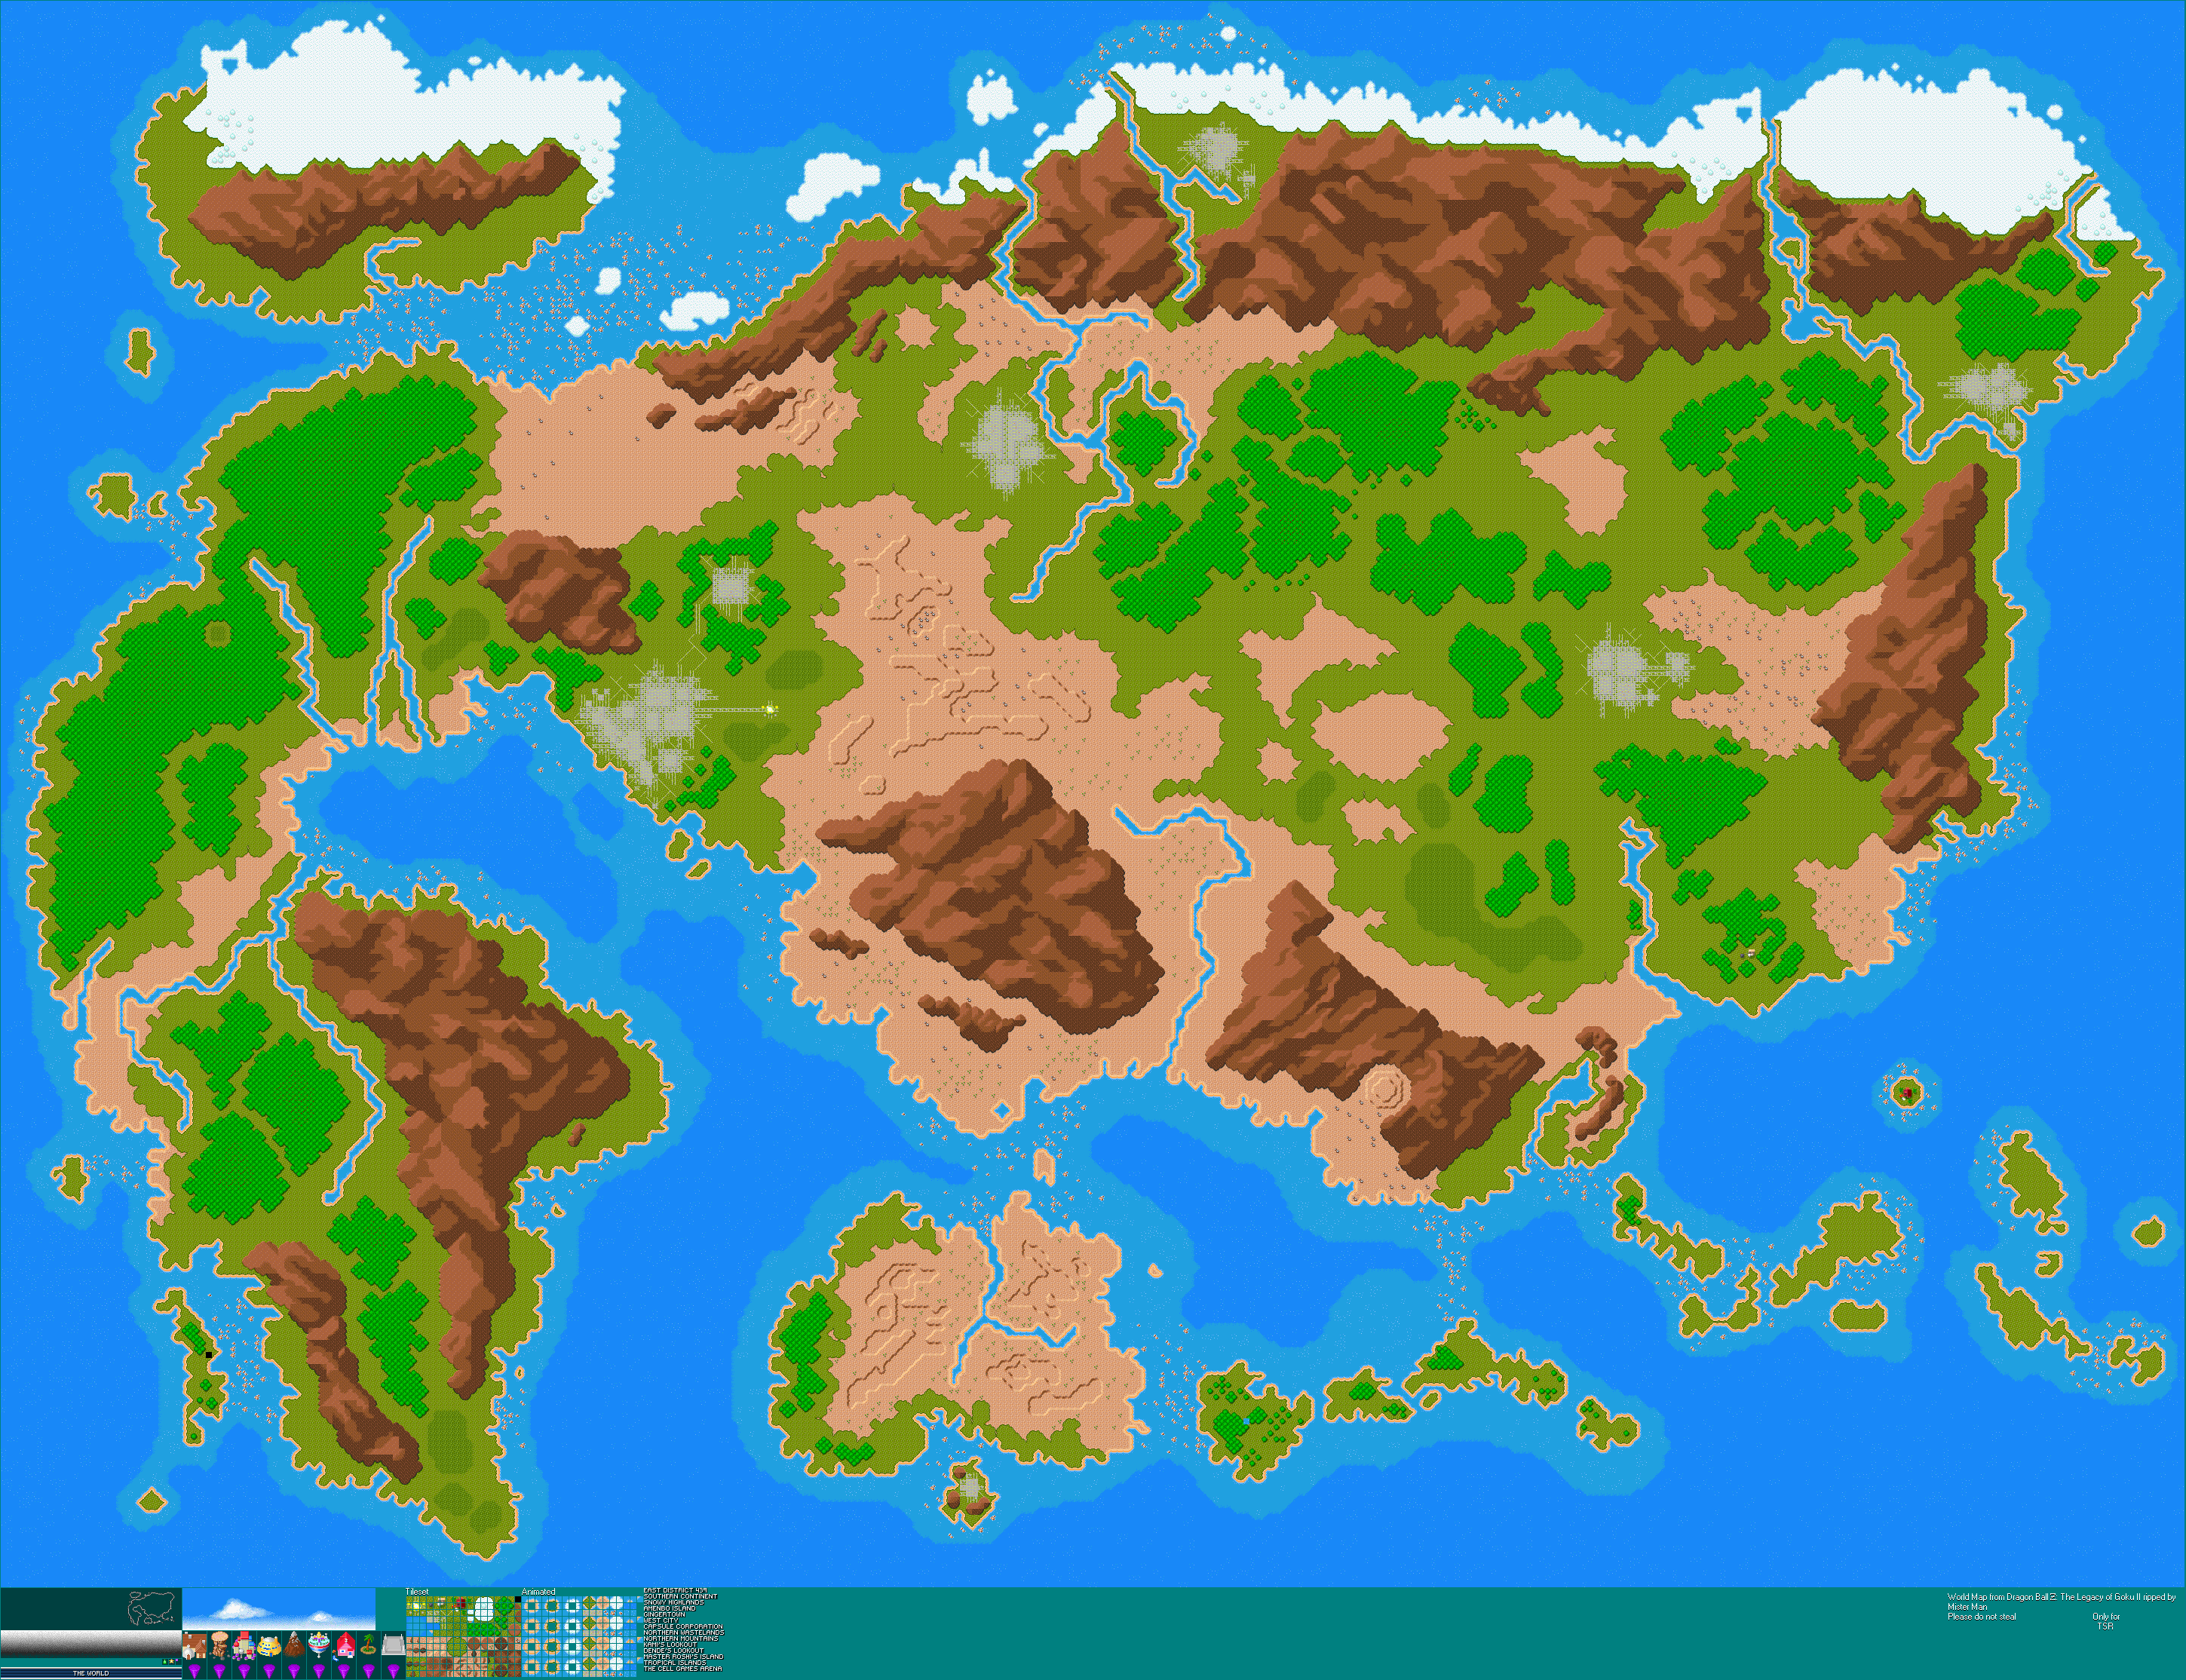 Game boy advance dragon ball z the legacy of goku ii world map click for full sized image world map gumiabroncs Choice Image